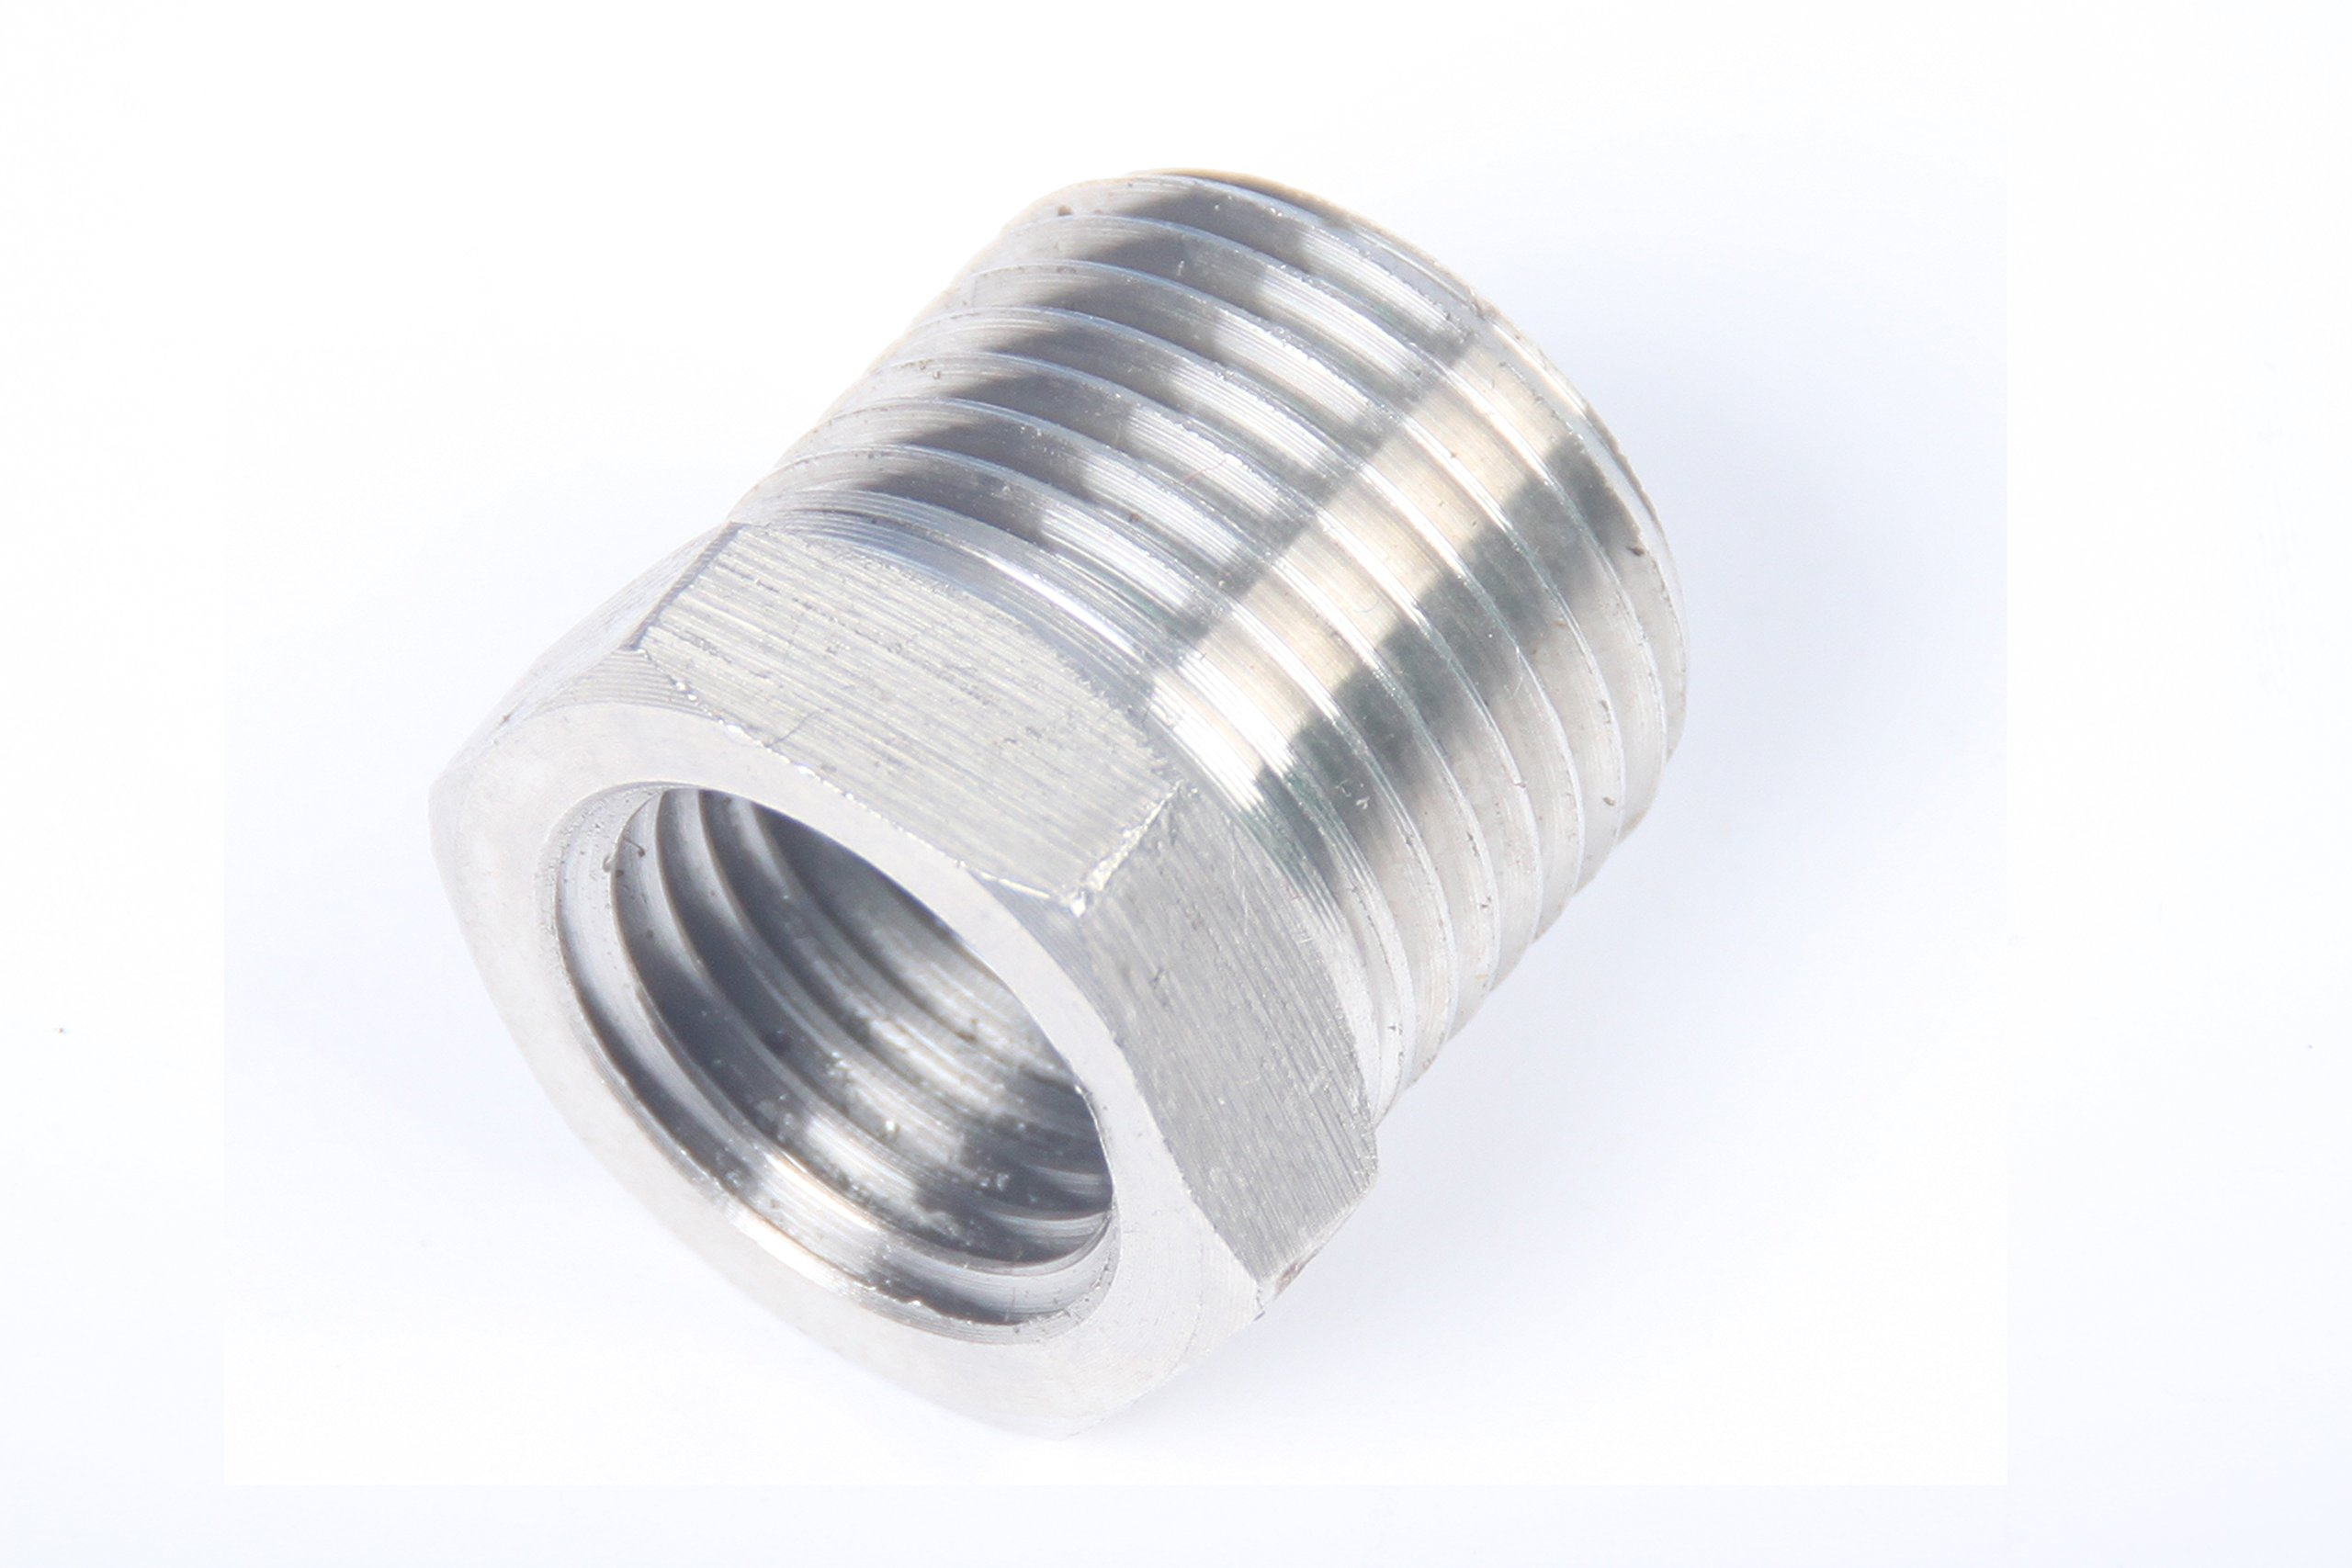 LTWFITTING Bar Production Stainless Steel 316 Pipe Hex Bushing Reducer Fittings 3/8'' Male x 1/4'' Female NPT Fuel Water Boat (Pack of 5)